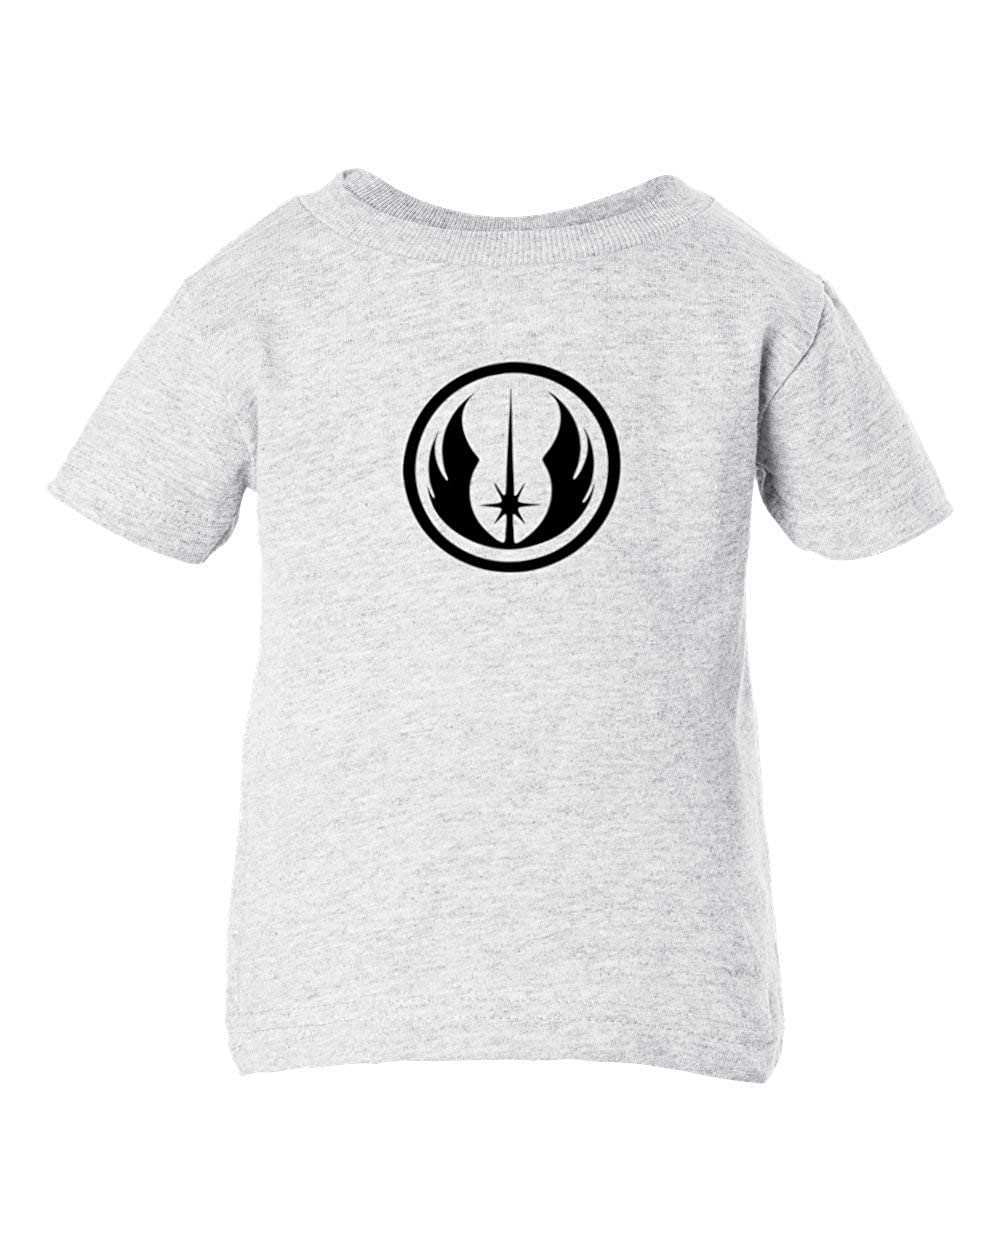 Mari Kyrios Jedi Order Symbol /& Emblem Baby Toddler Child Cotton Ash T-Shirt